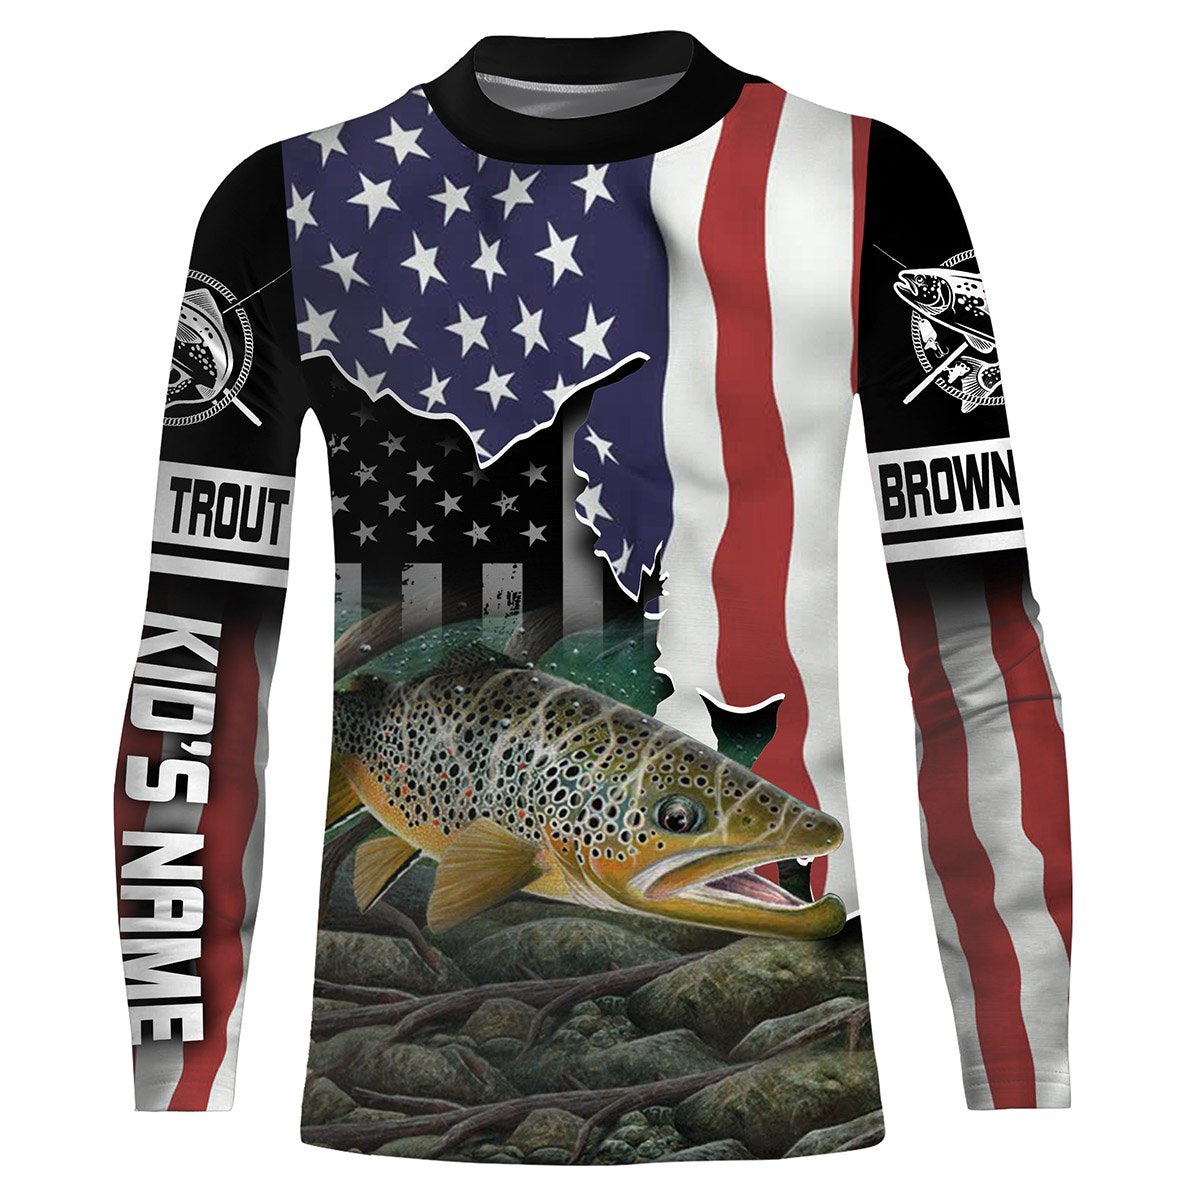 Download Brown Trout Fishing 3D American Flag Patriot Customize ...